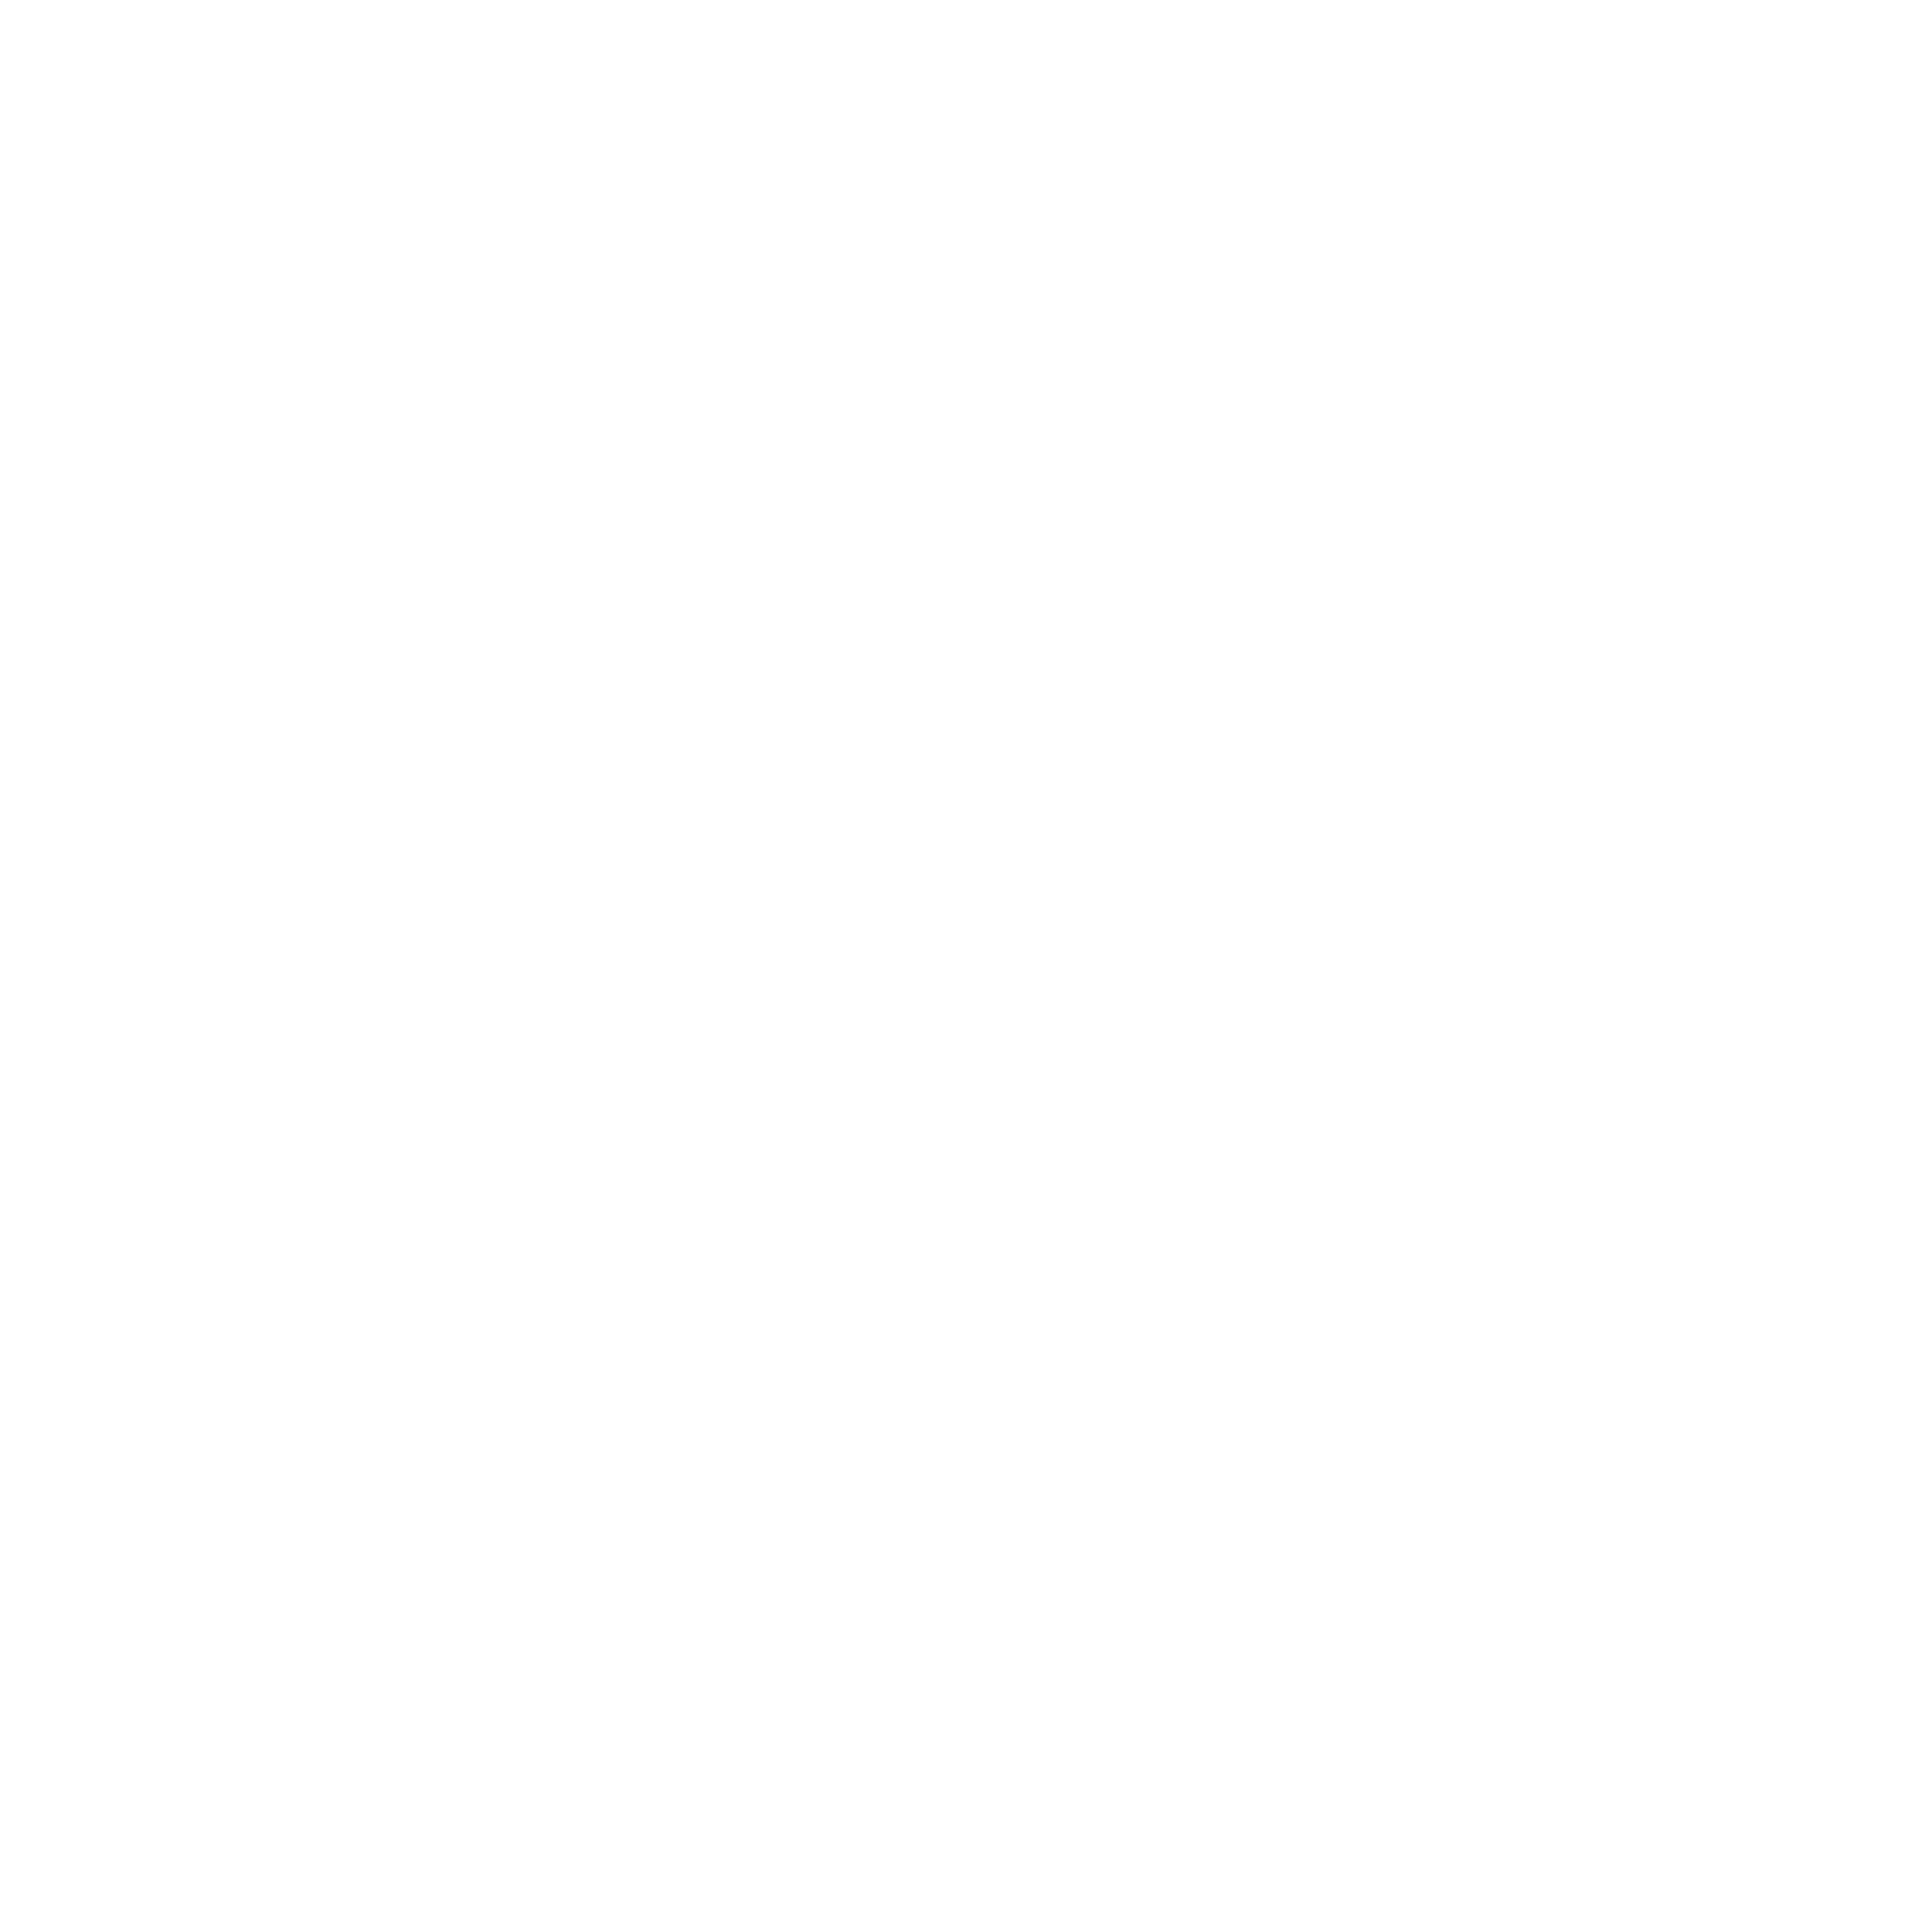 CHEVEROLET-1.png